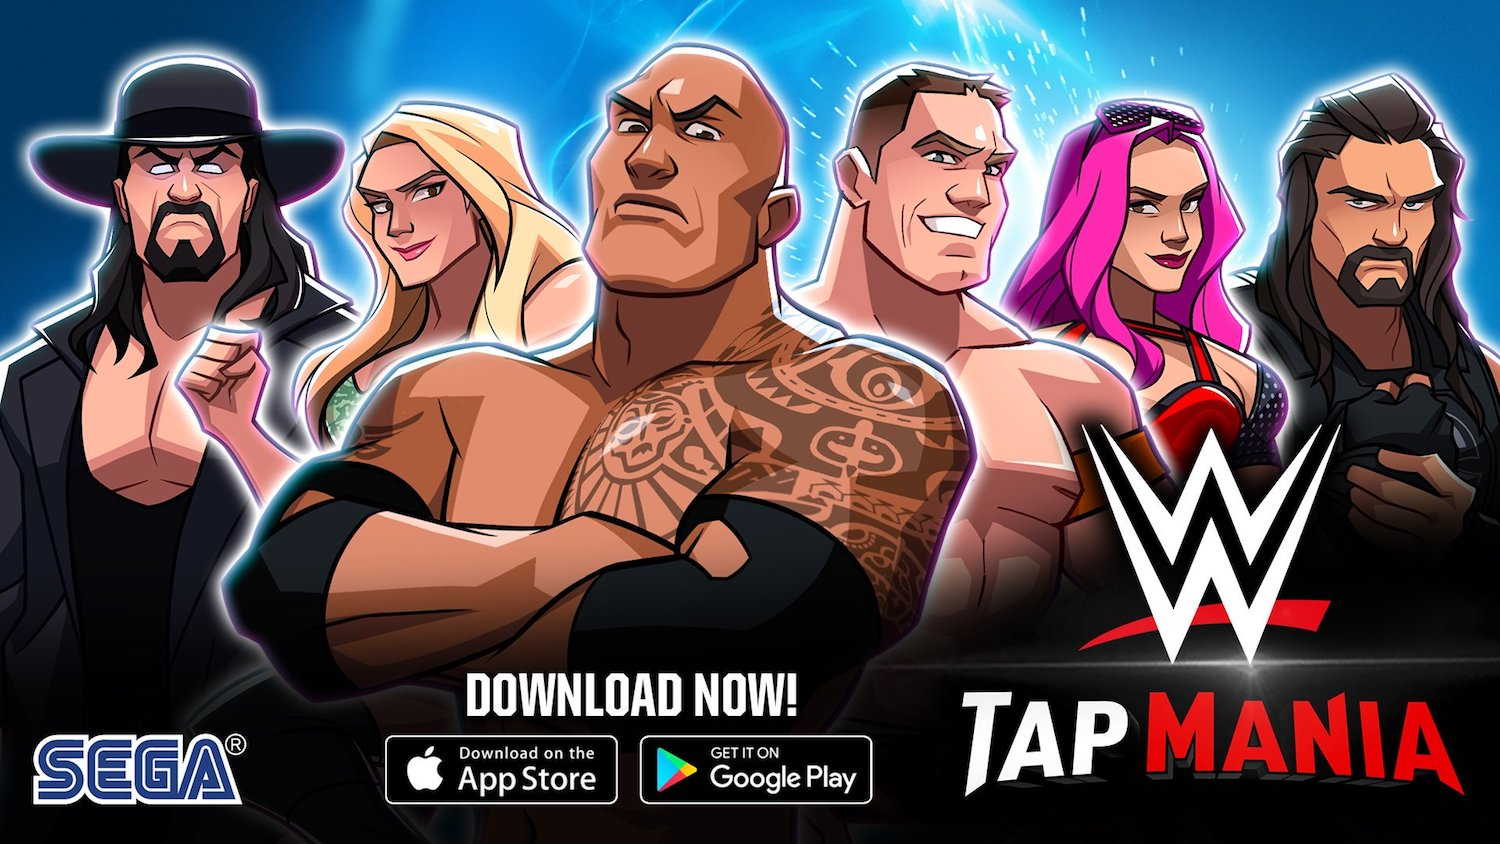 WWE Tap Mania SEGA idle mobile game